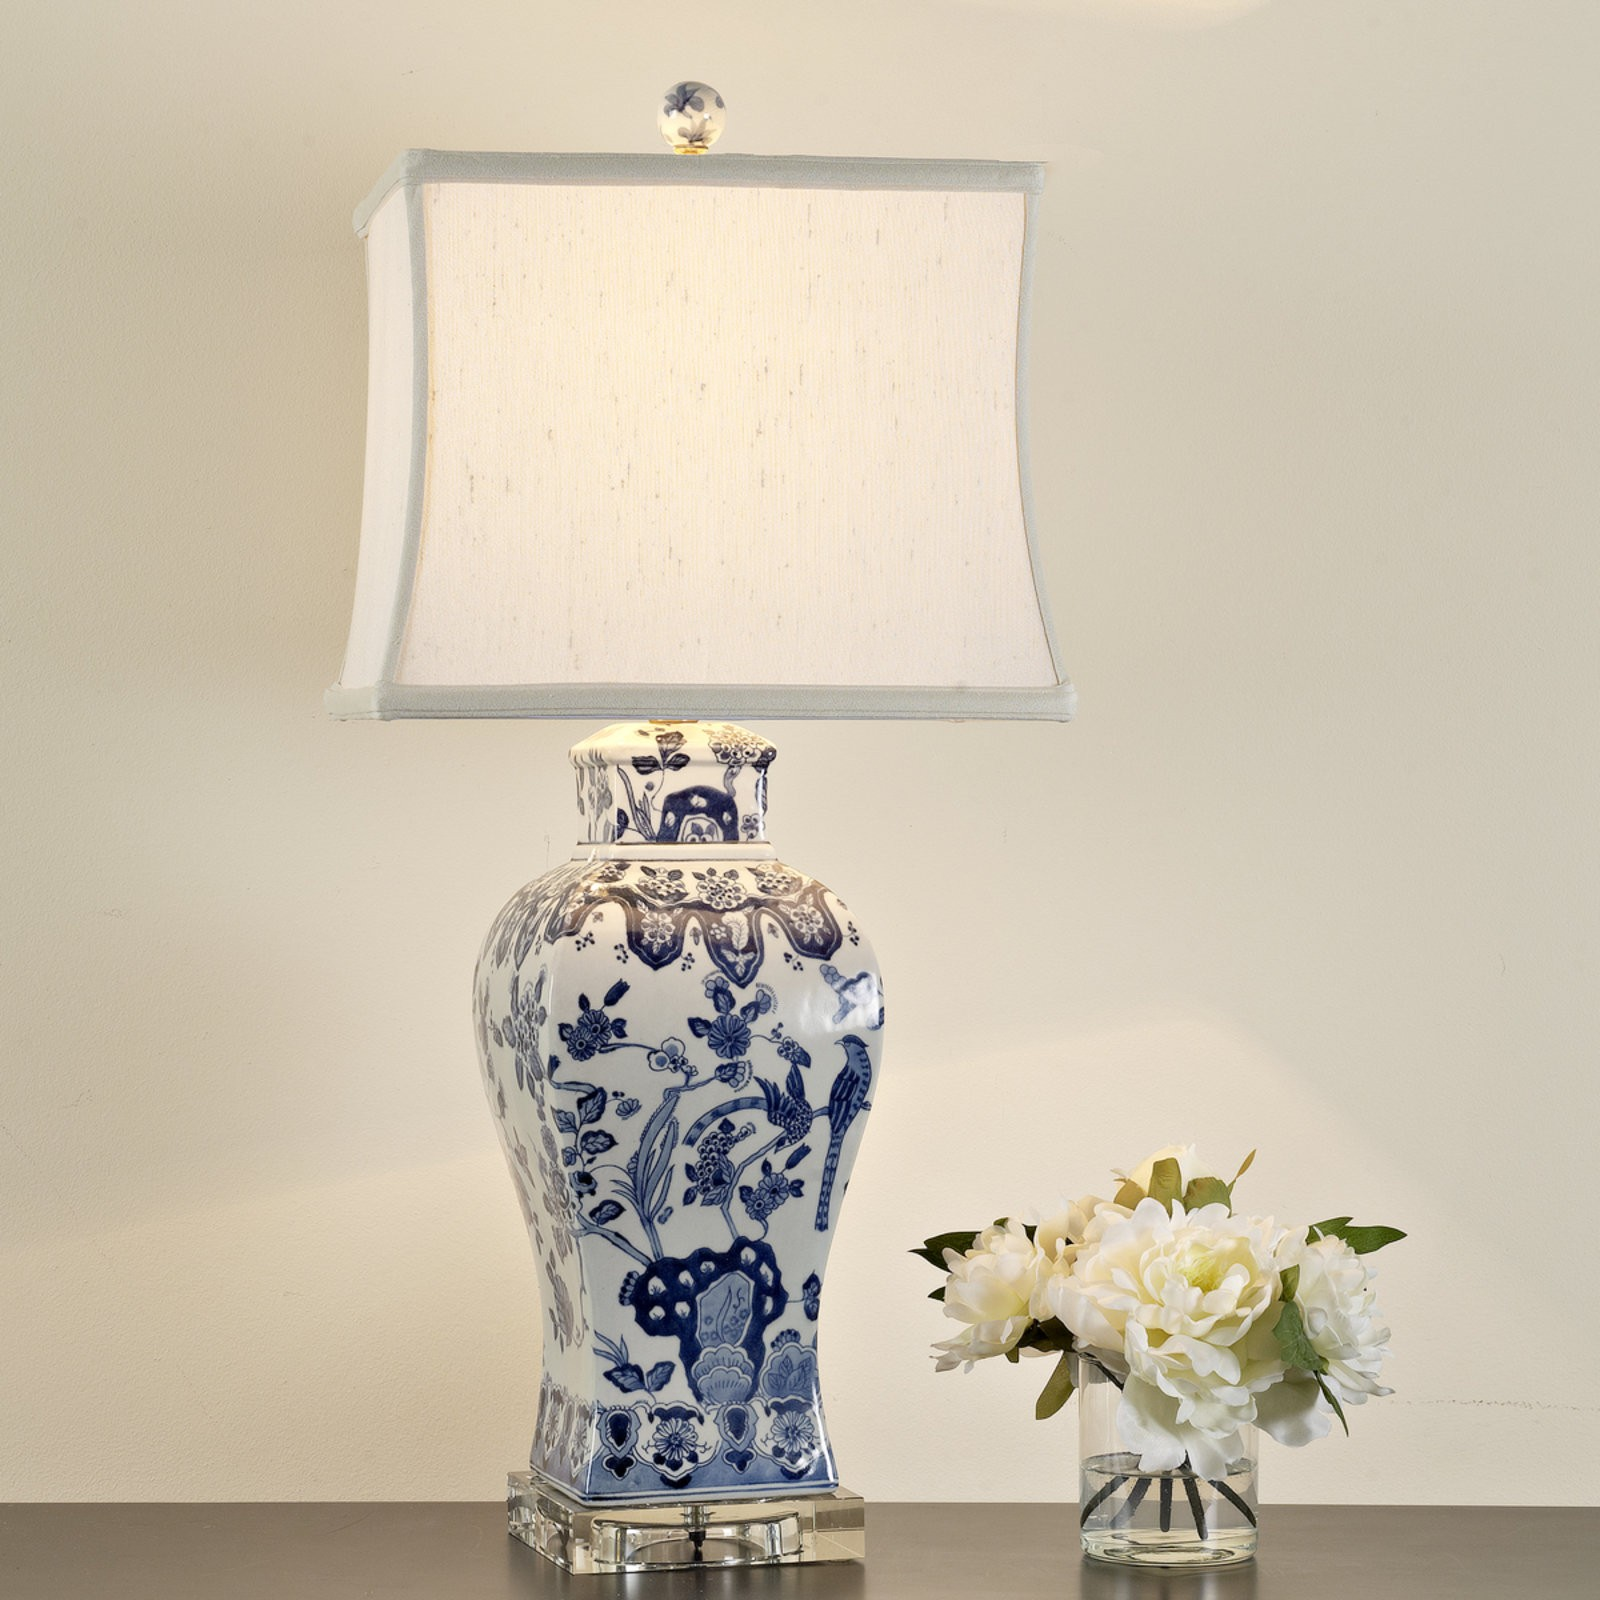 Delicieux Blue And White Porcelain Table Lamps